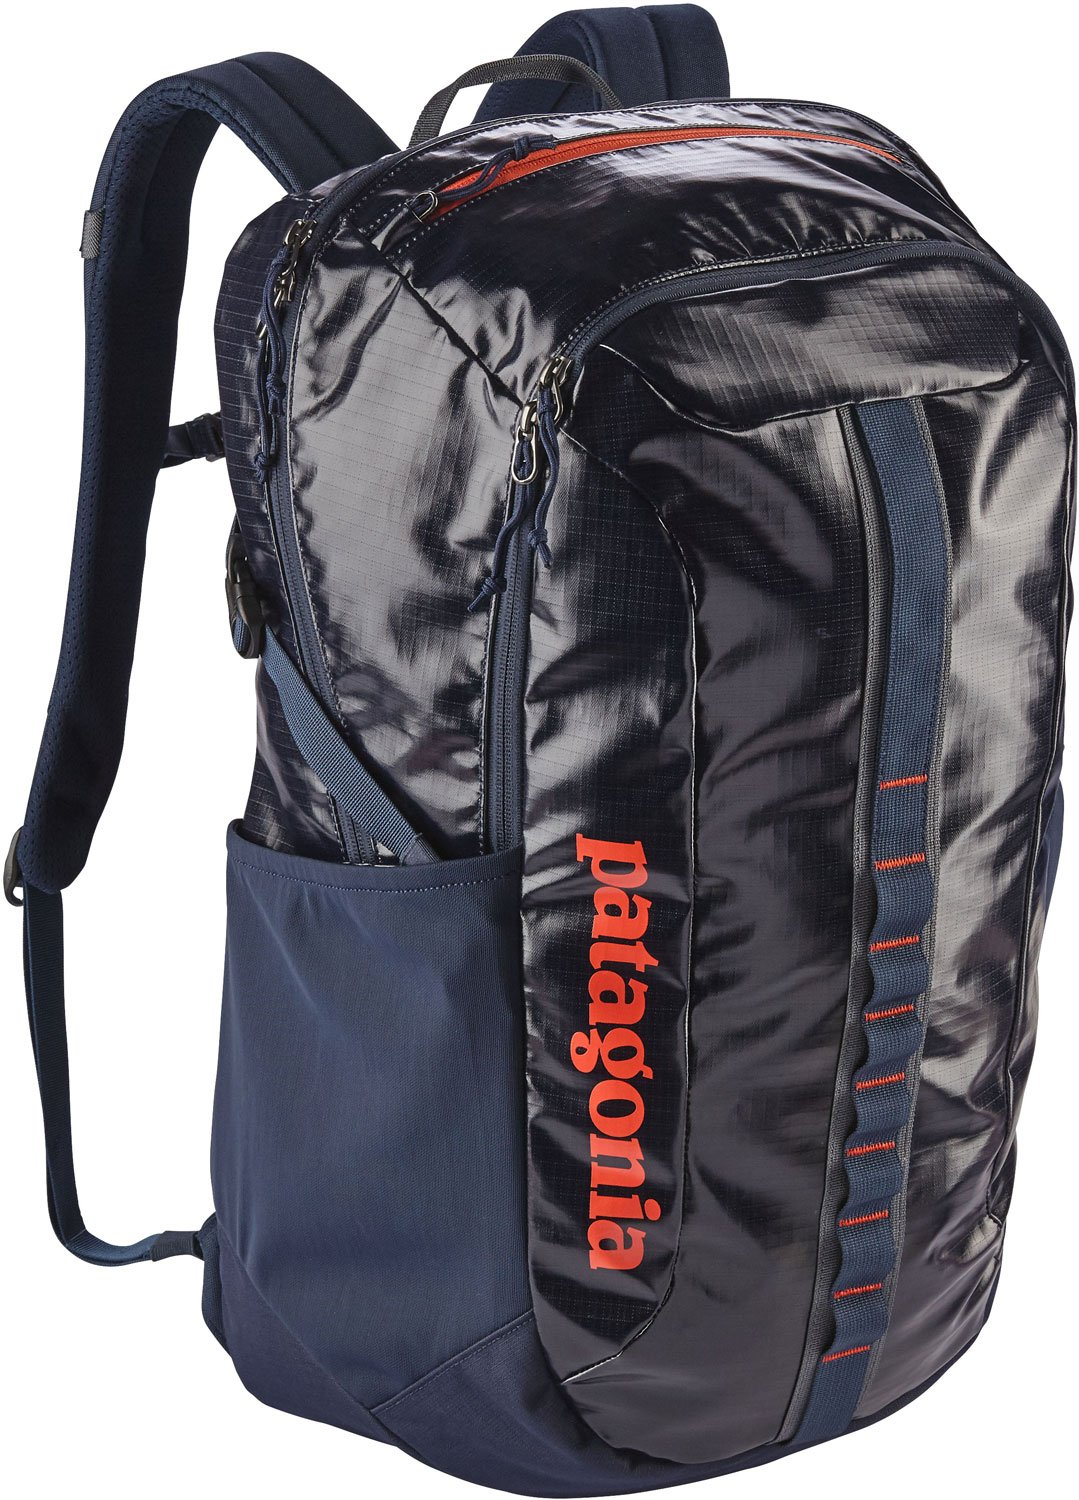 Patagonia Black Hole Pack 30L Navy Blue w/ Paintbrush Red